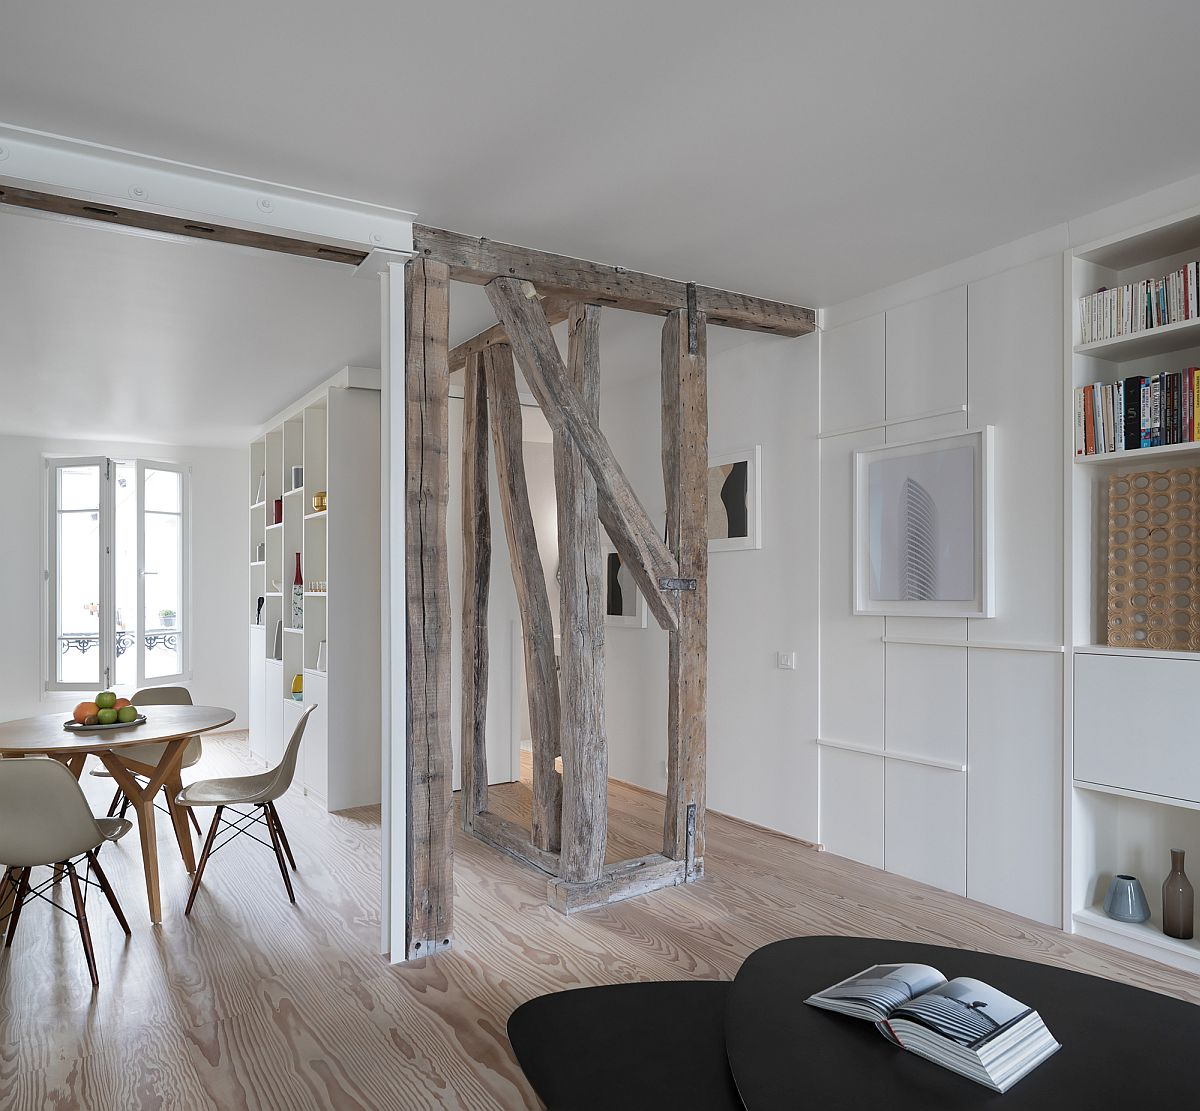 Modern-Paris-home-turns-two-individual-apartments-into-one-larger-family-residence-46542